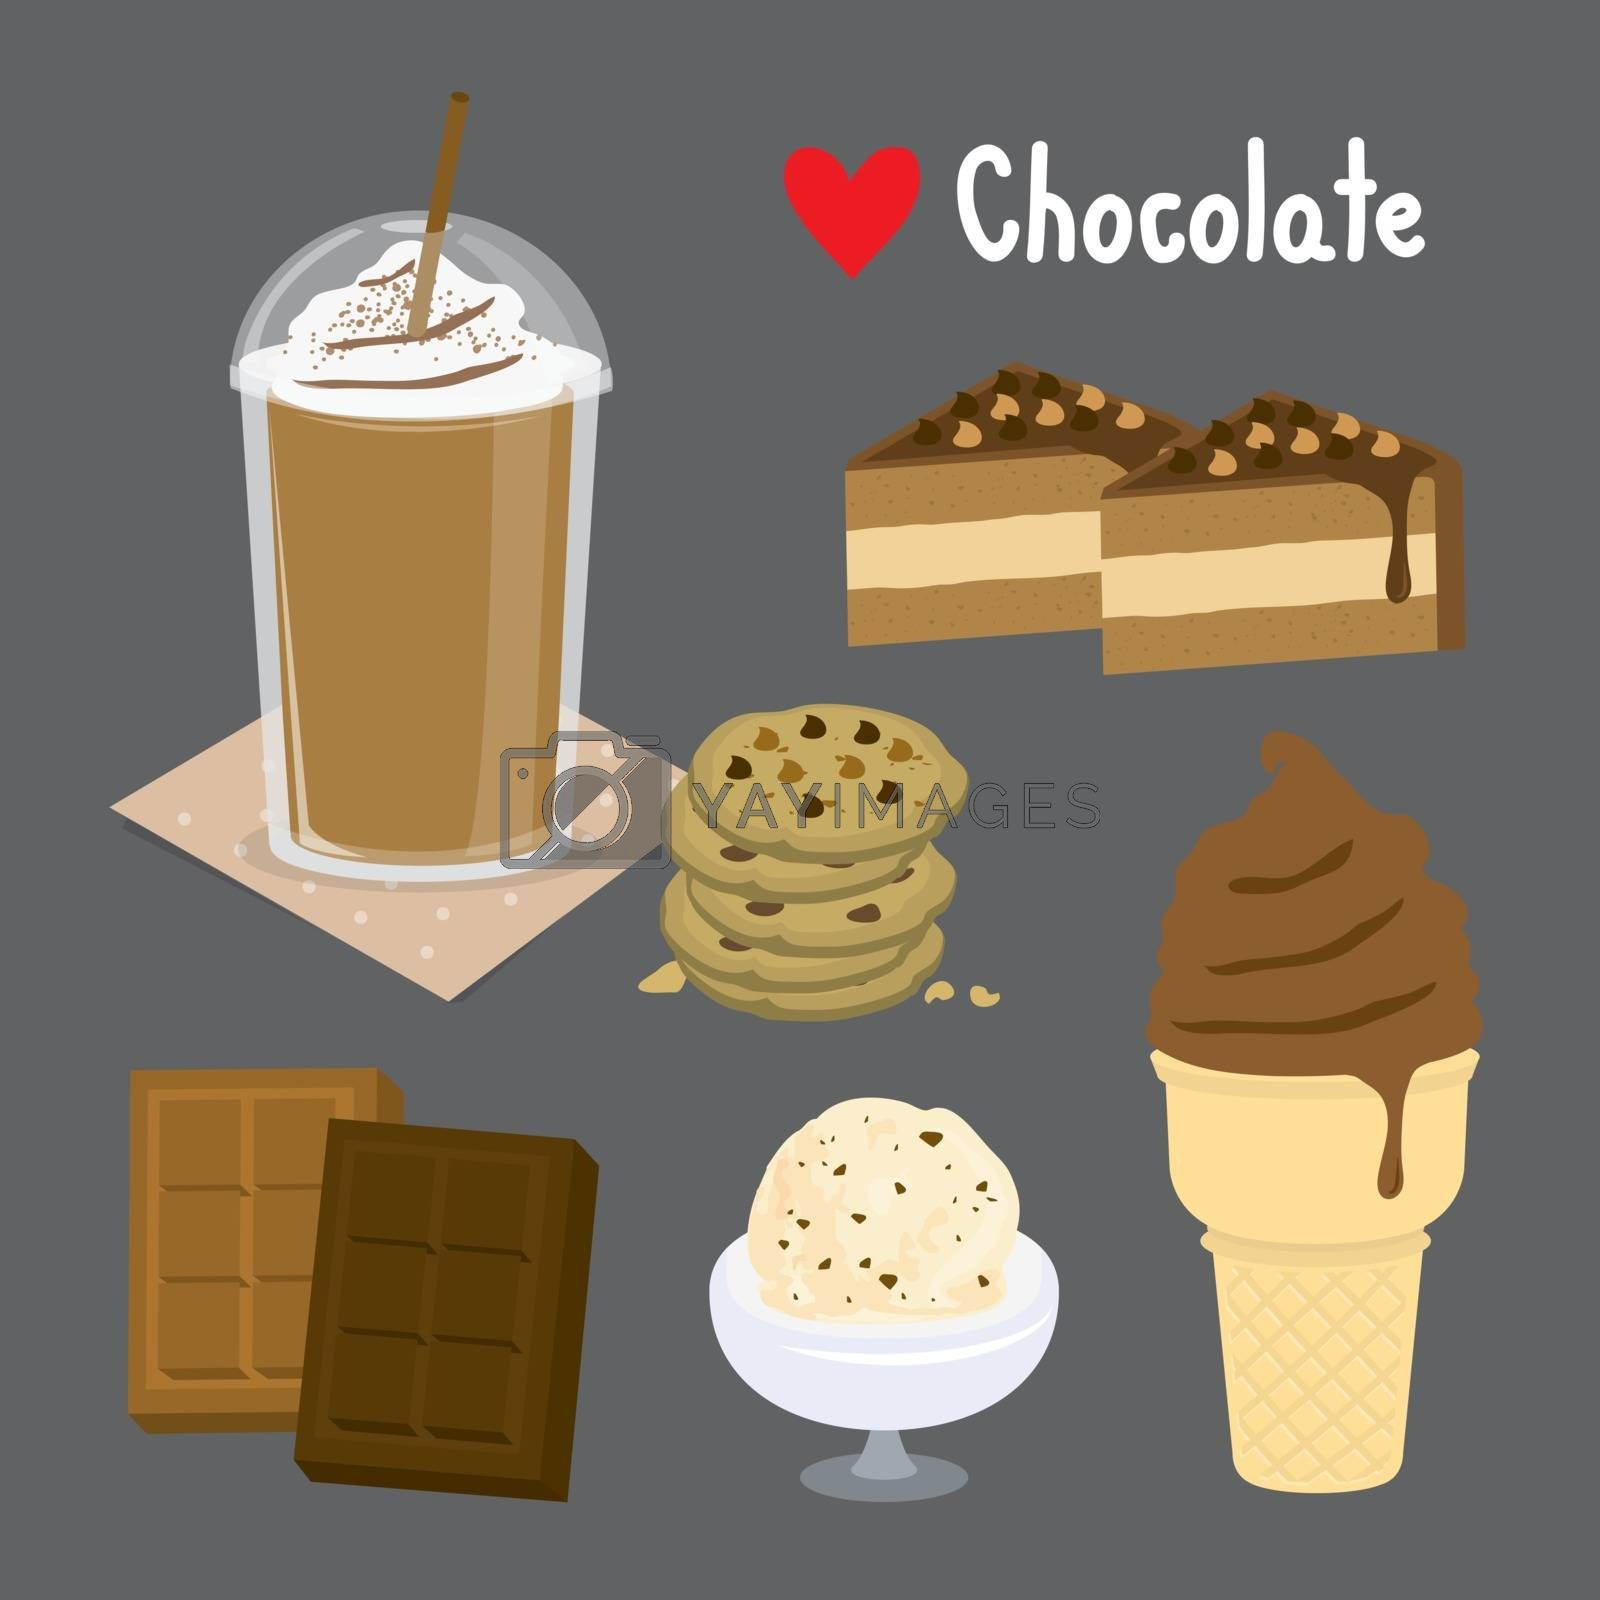 Set of Sweet chocolate and Desserts made of chocolate. ice cream and bakery. Cartoon Vector illustration